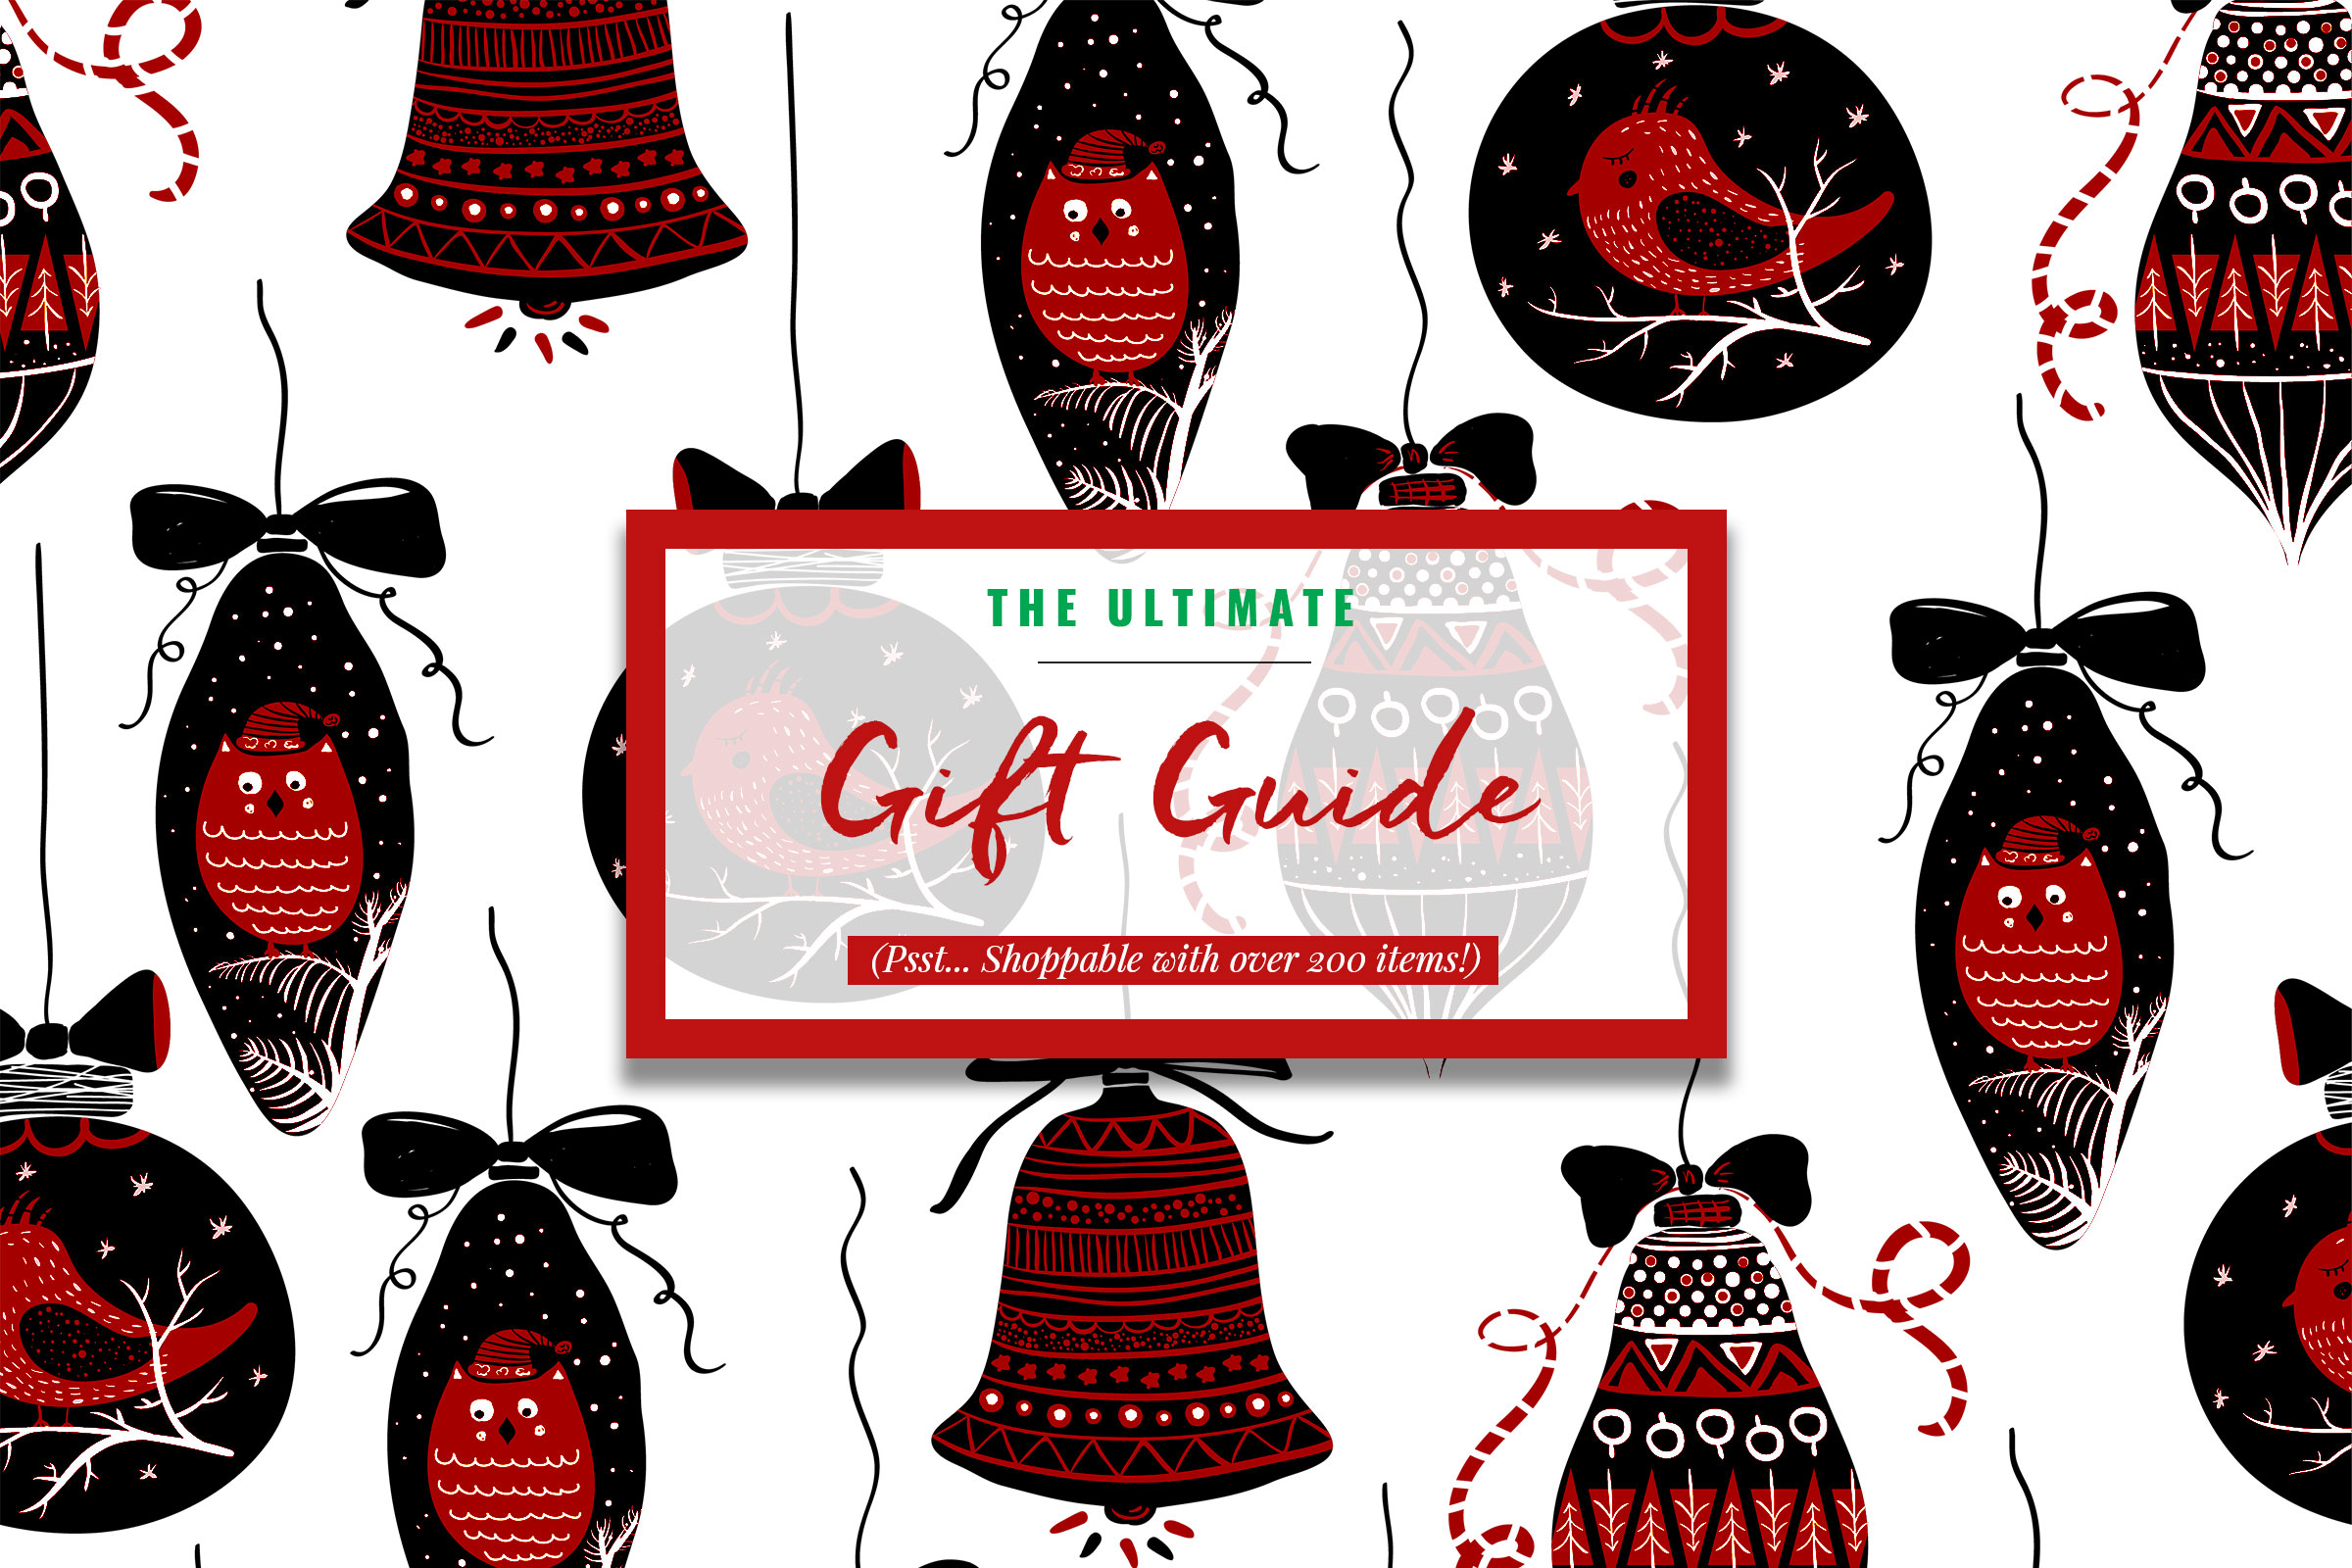 Les-Naly-Holiday-Gift-Guide-Women-Work.jpg